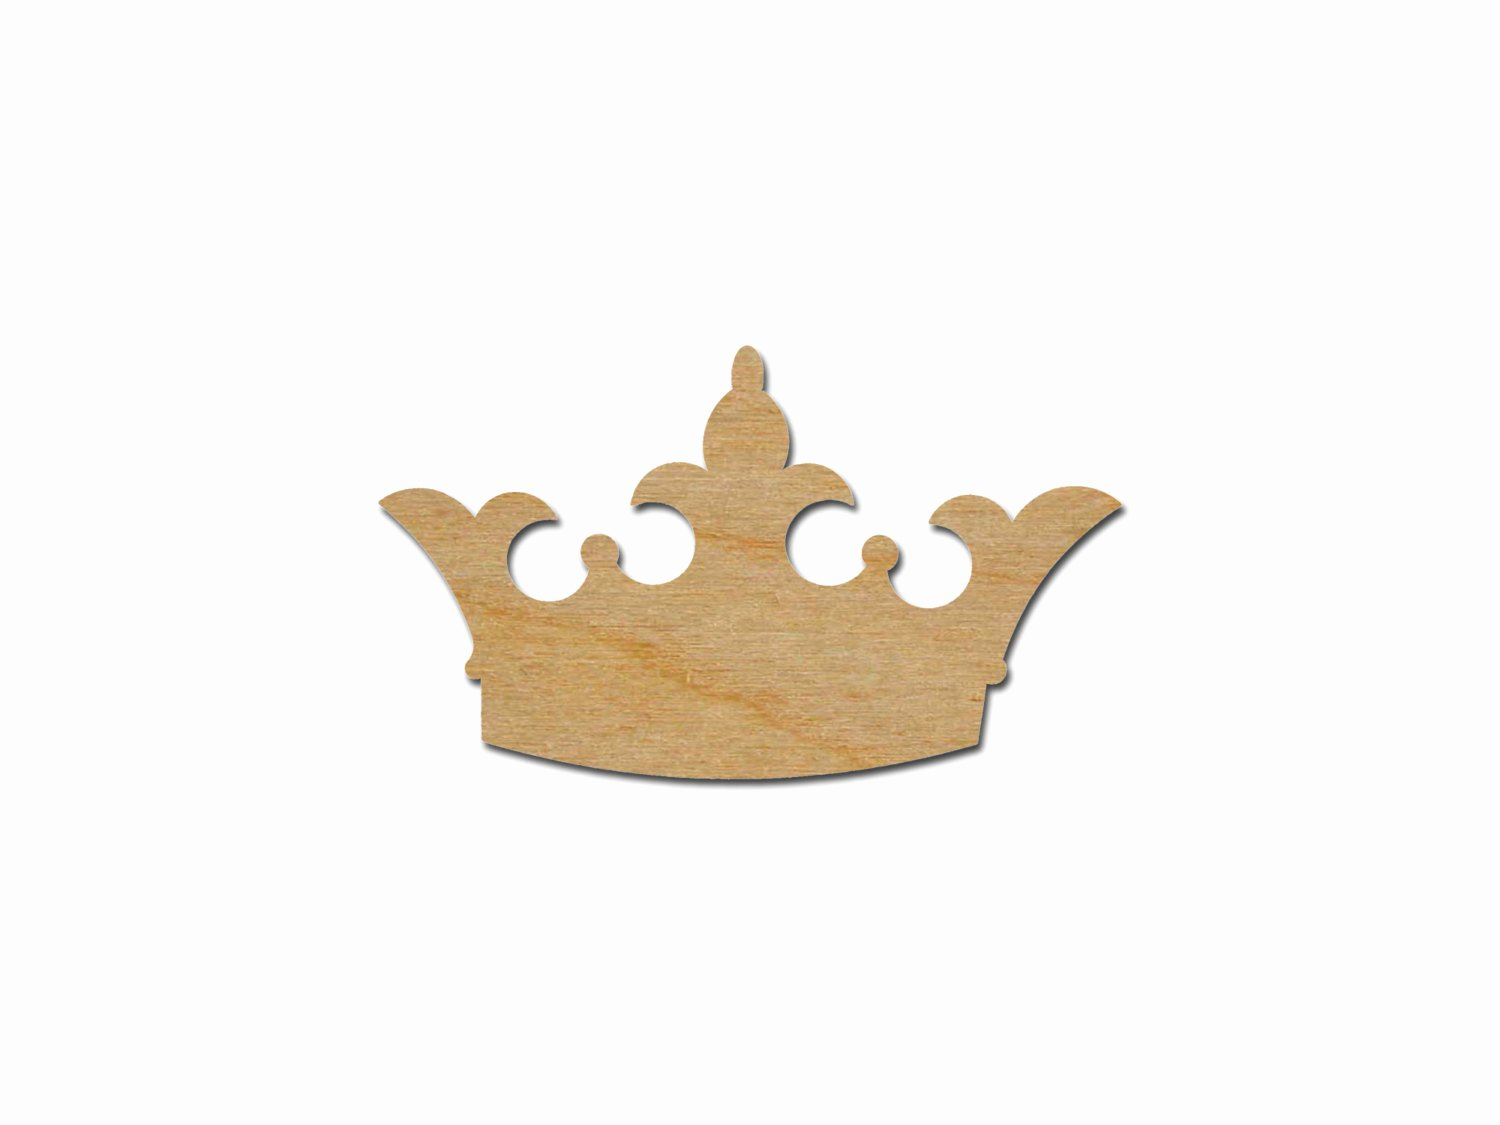 Princess Crown Cut Out Awesome Princess Crown Unfinished Wood Cut Out by Artisticcraftsupply